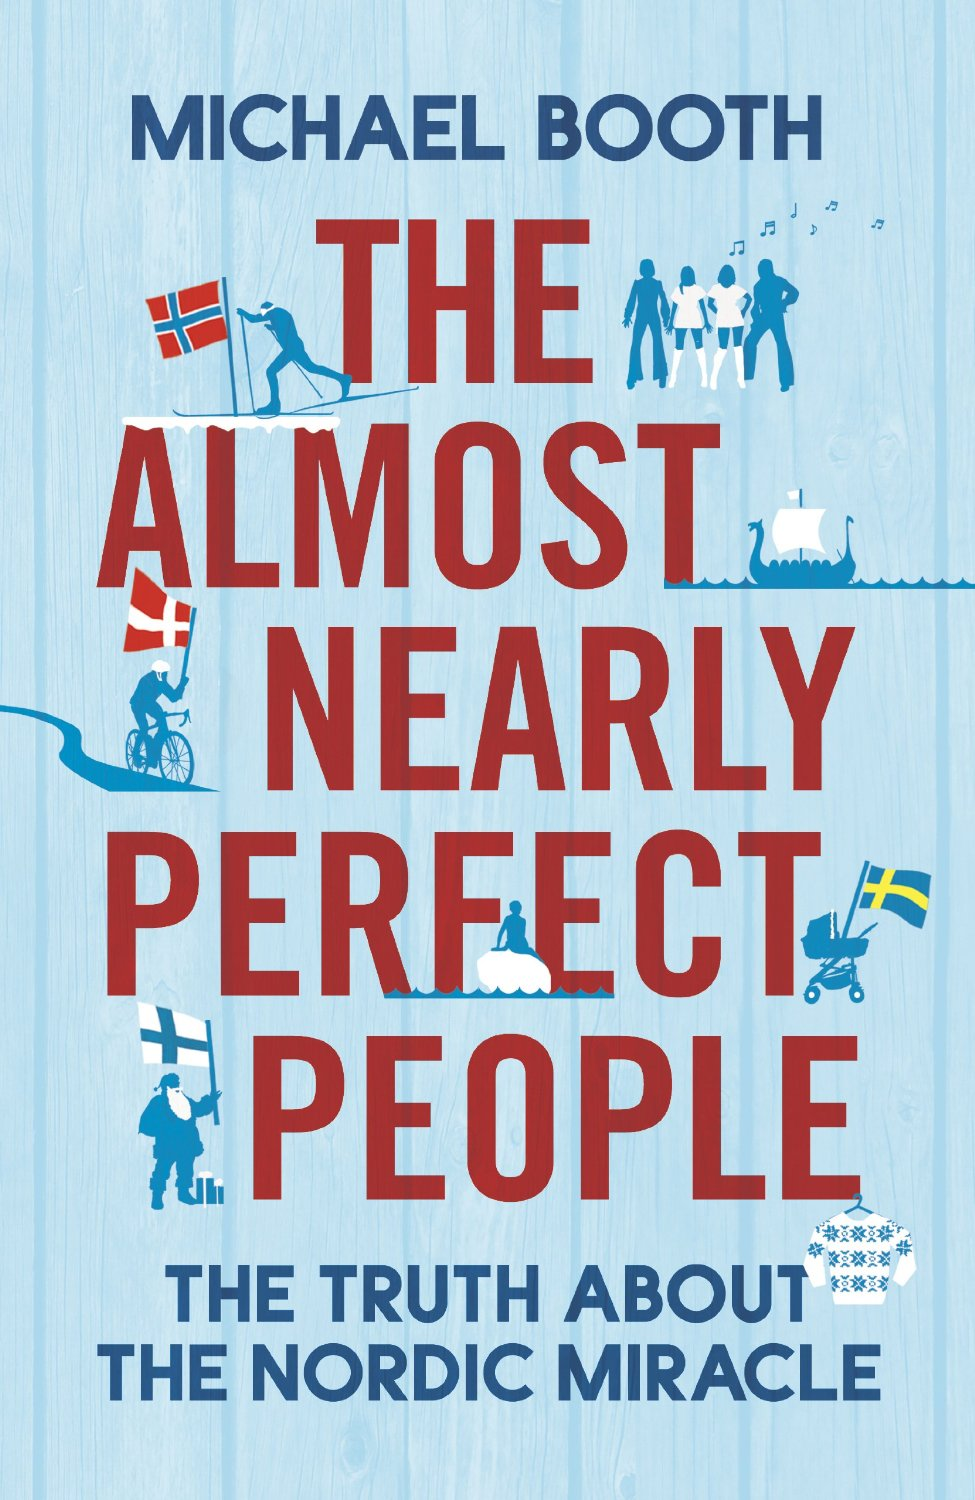 120315-booth-book-cover-the-almost-nearly-perfect-people